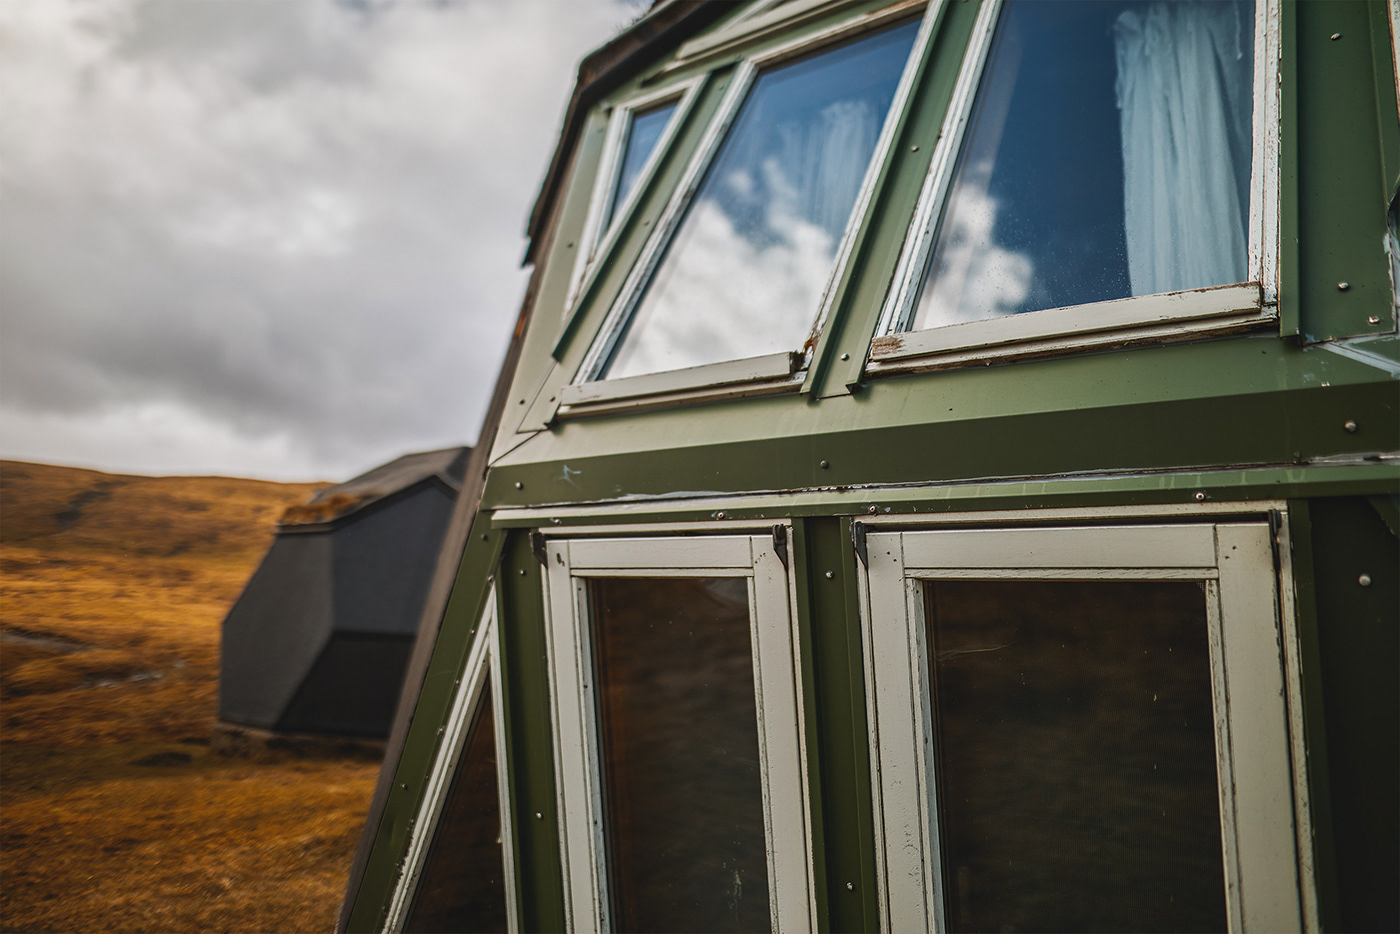 altrath,architecture,denmark,domes,faroer islands,islands,Landscape,Photography ,tinyhouse,house